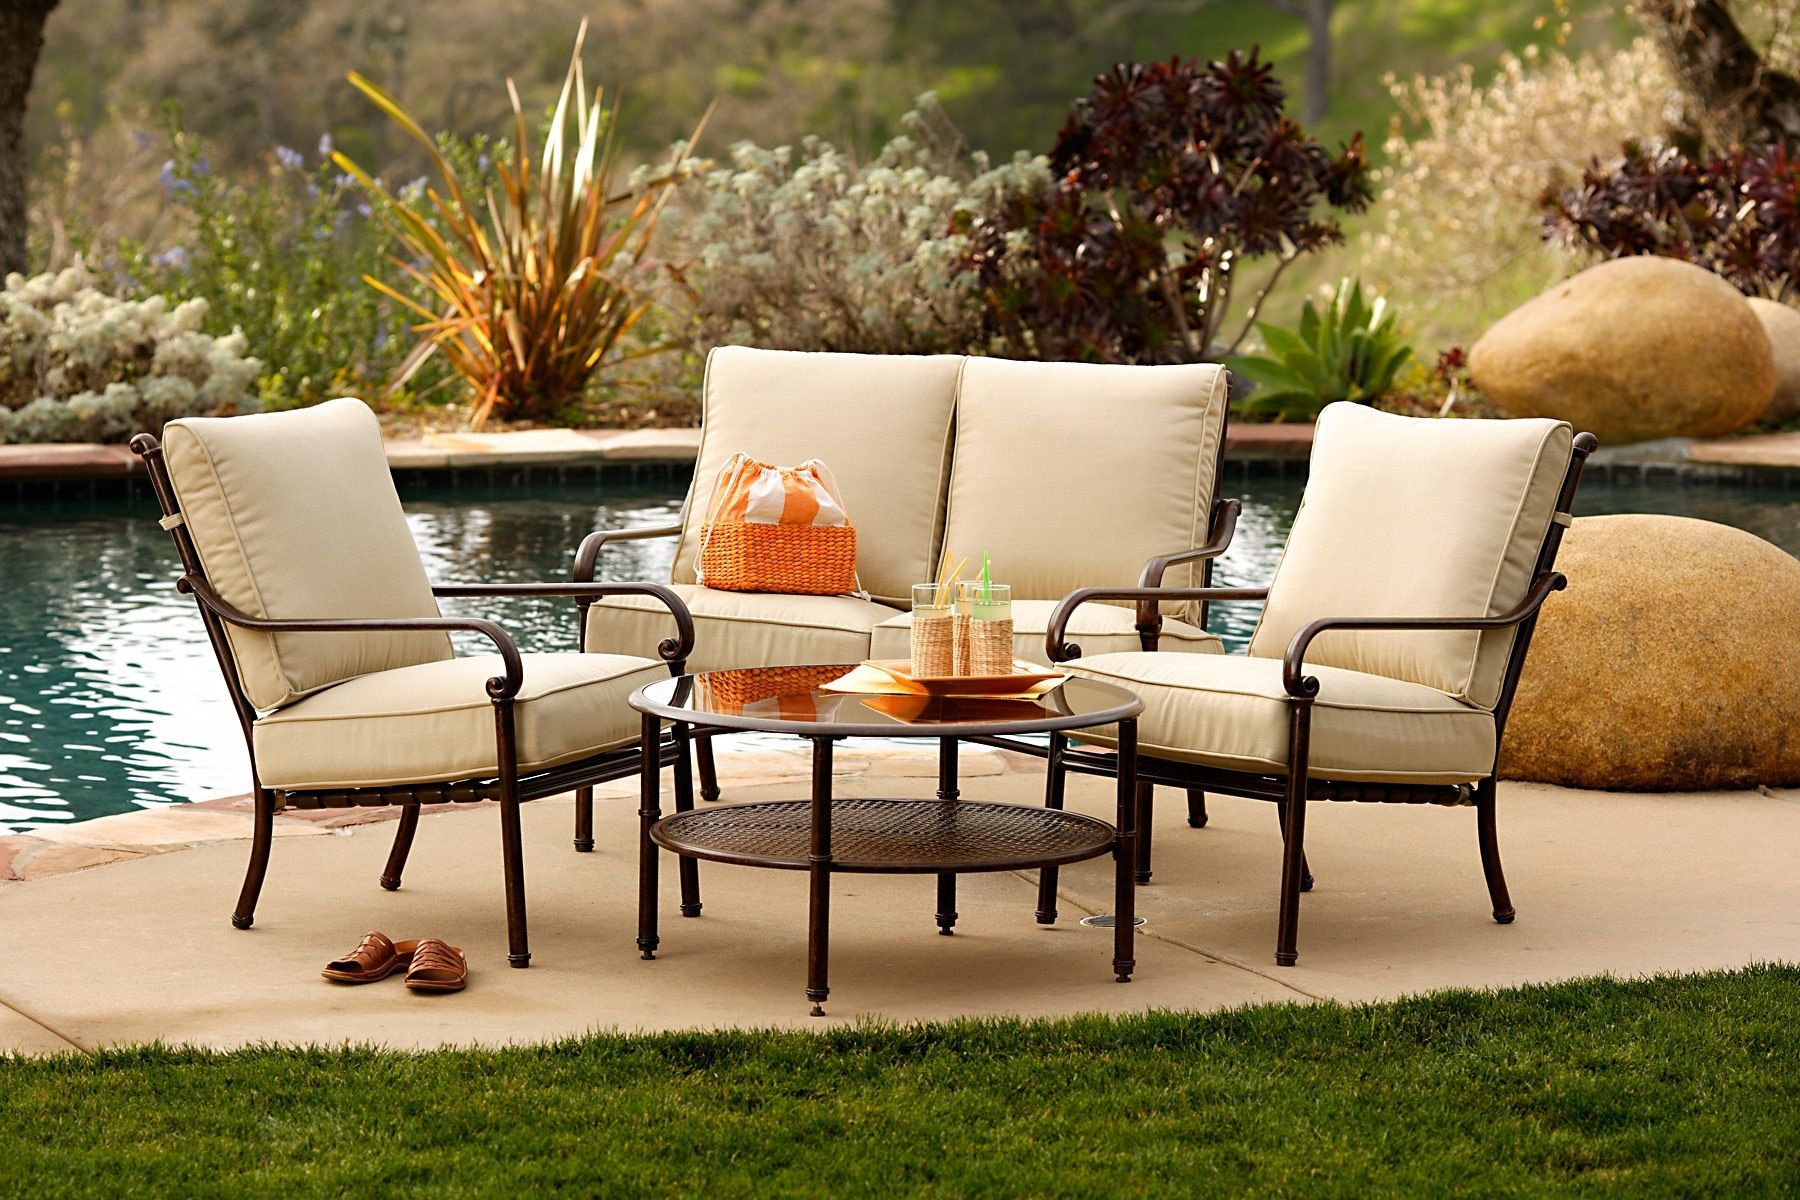 Famous Patio Cool Conversation Sets Patio Furniture Clearance Theydesign Throughout Inexpensive Patio Conversation Sets (View 4 of 20)